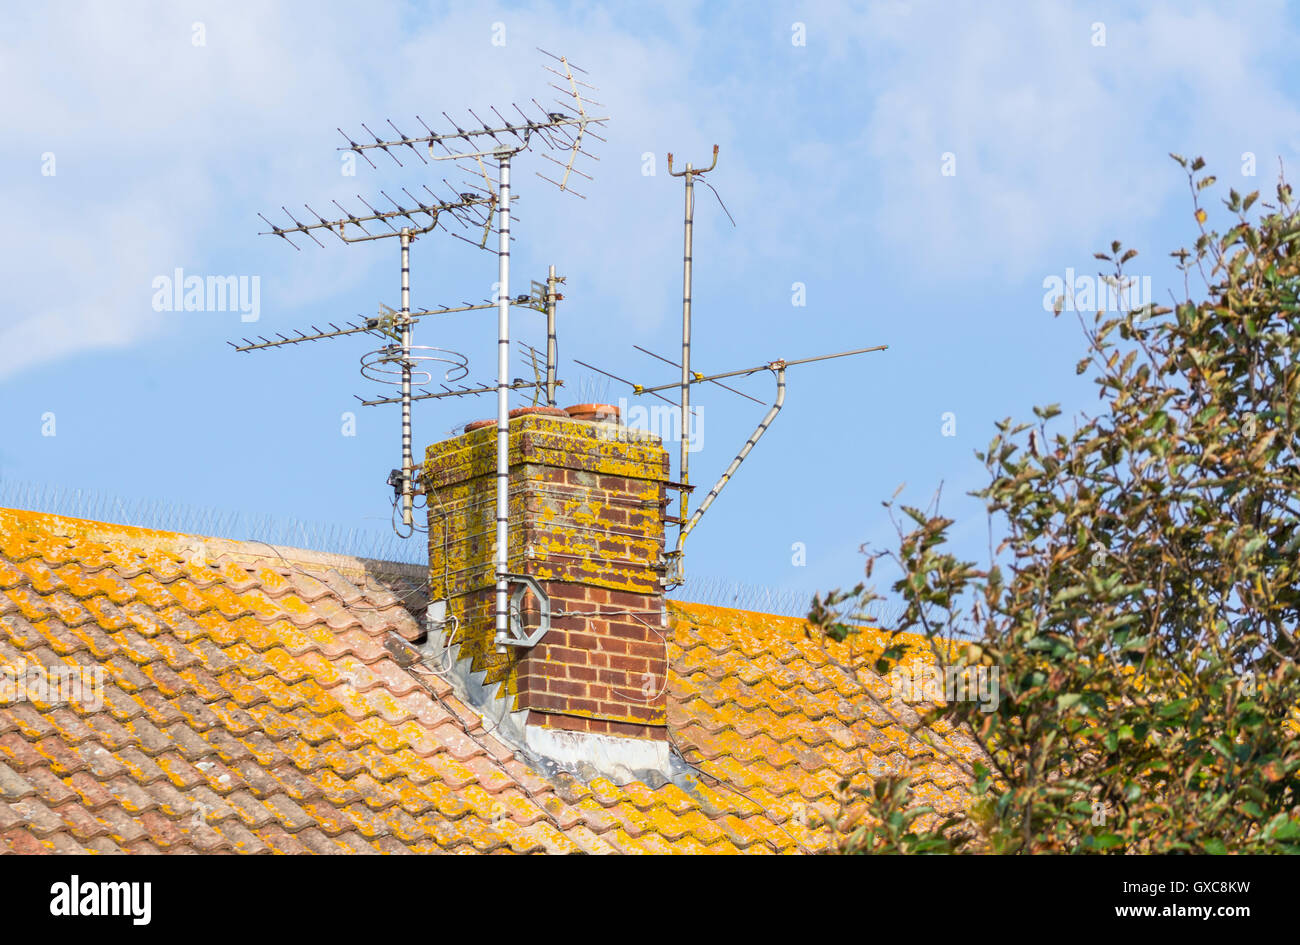 Multiple TV aerials mounted on a chimney on a terrace of houses in the UK. - Stock Image